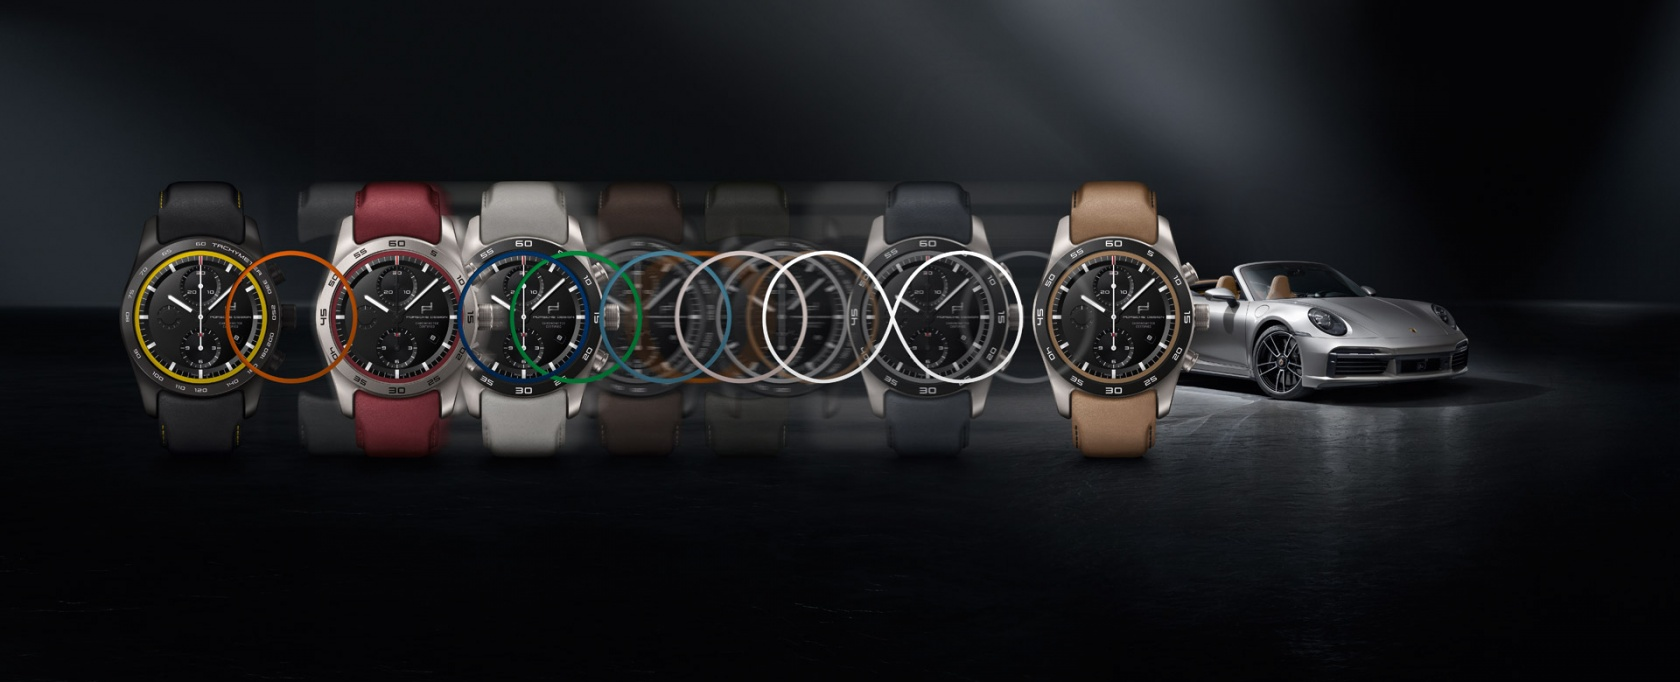 Porsche Design custom-built Timepieces